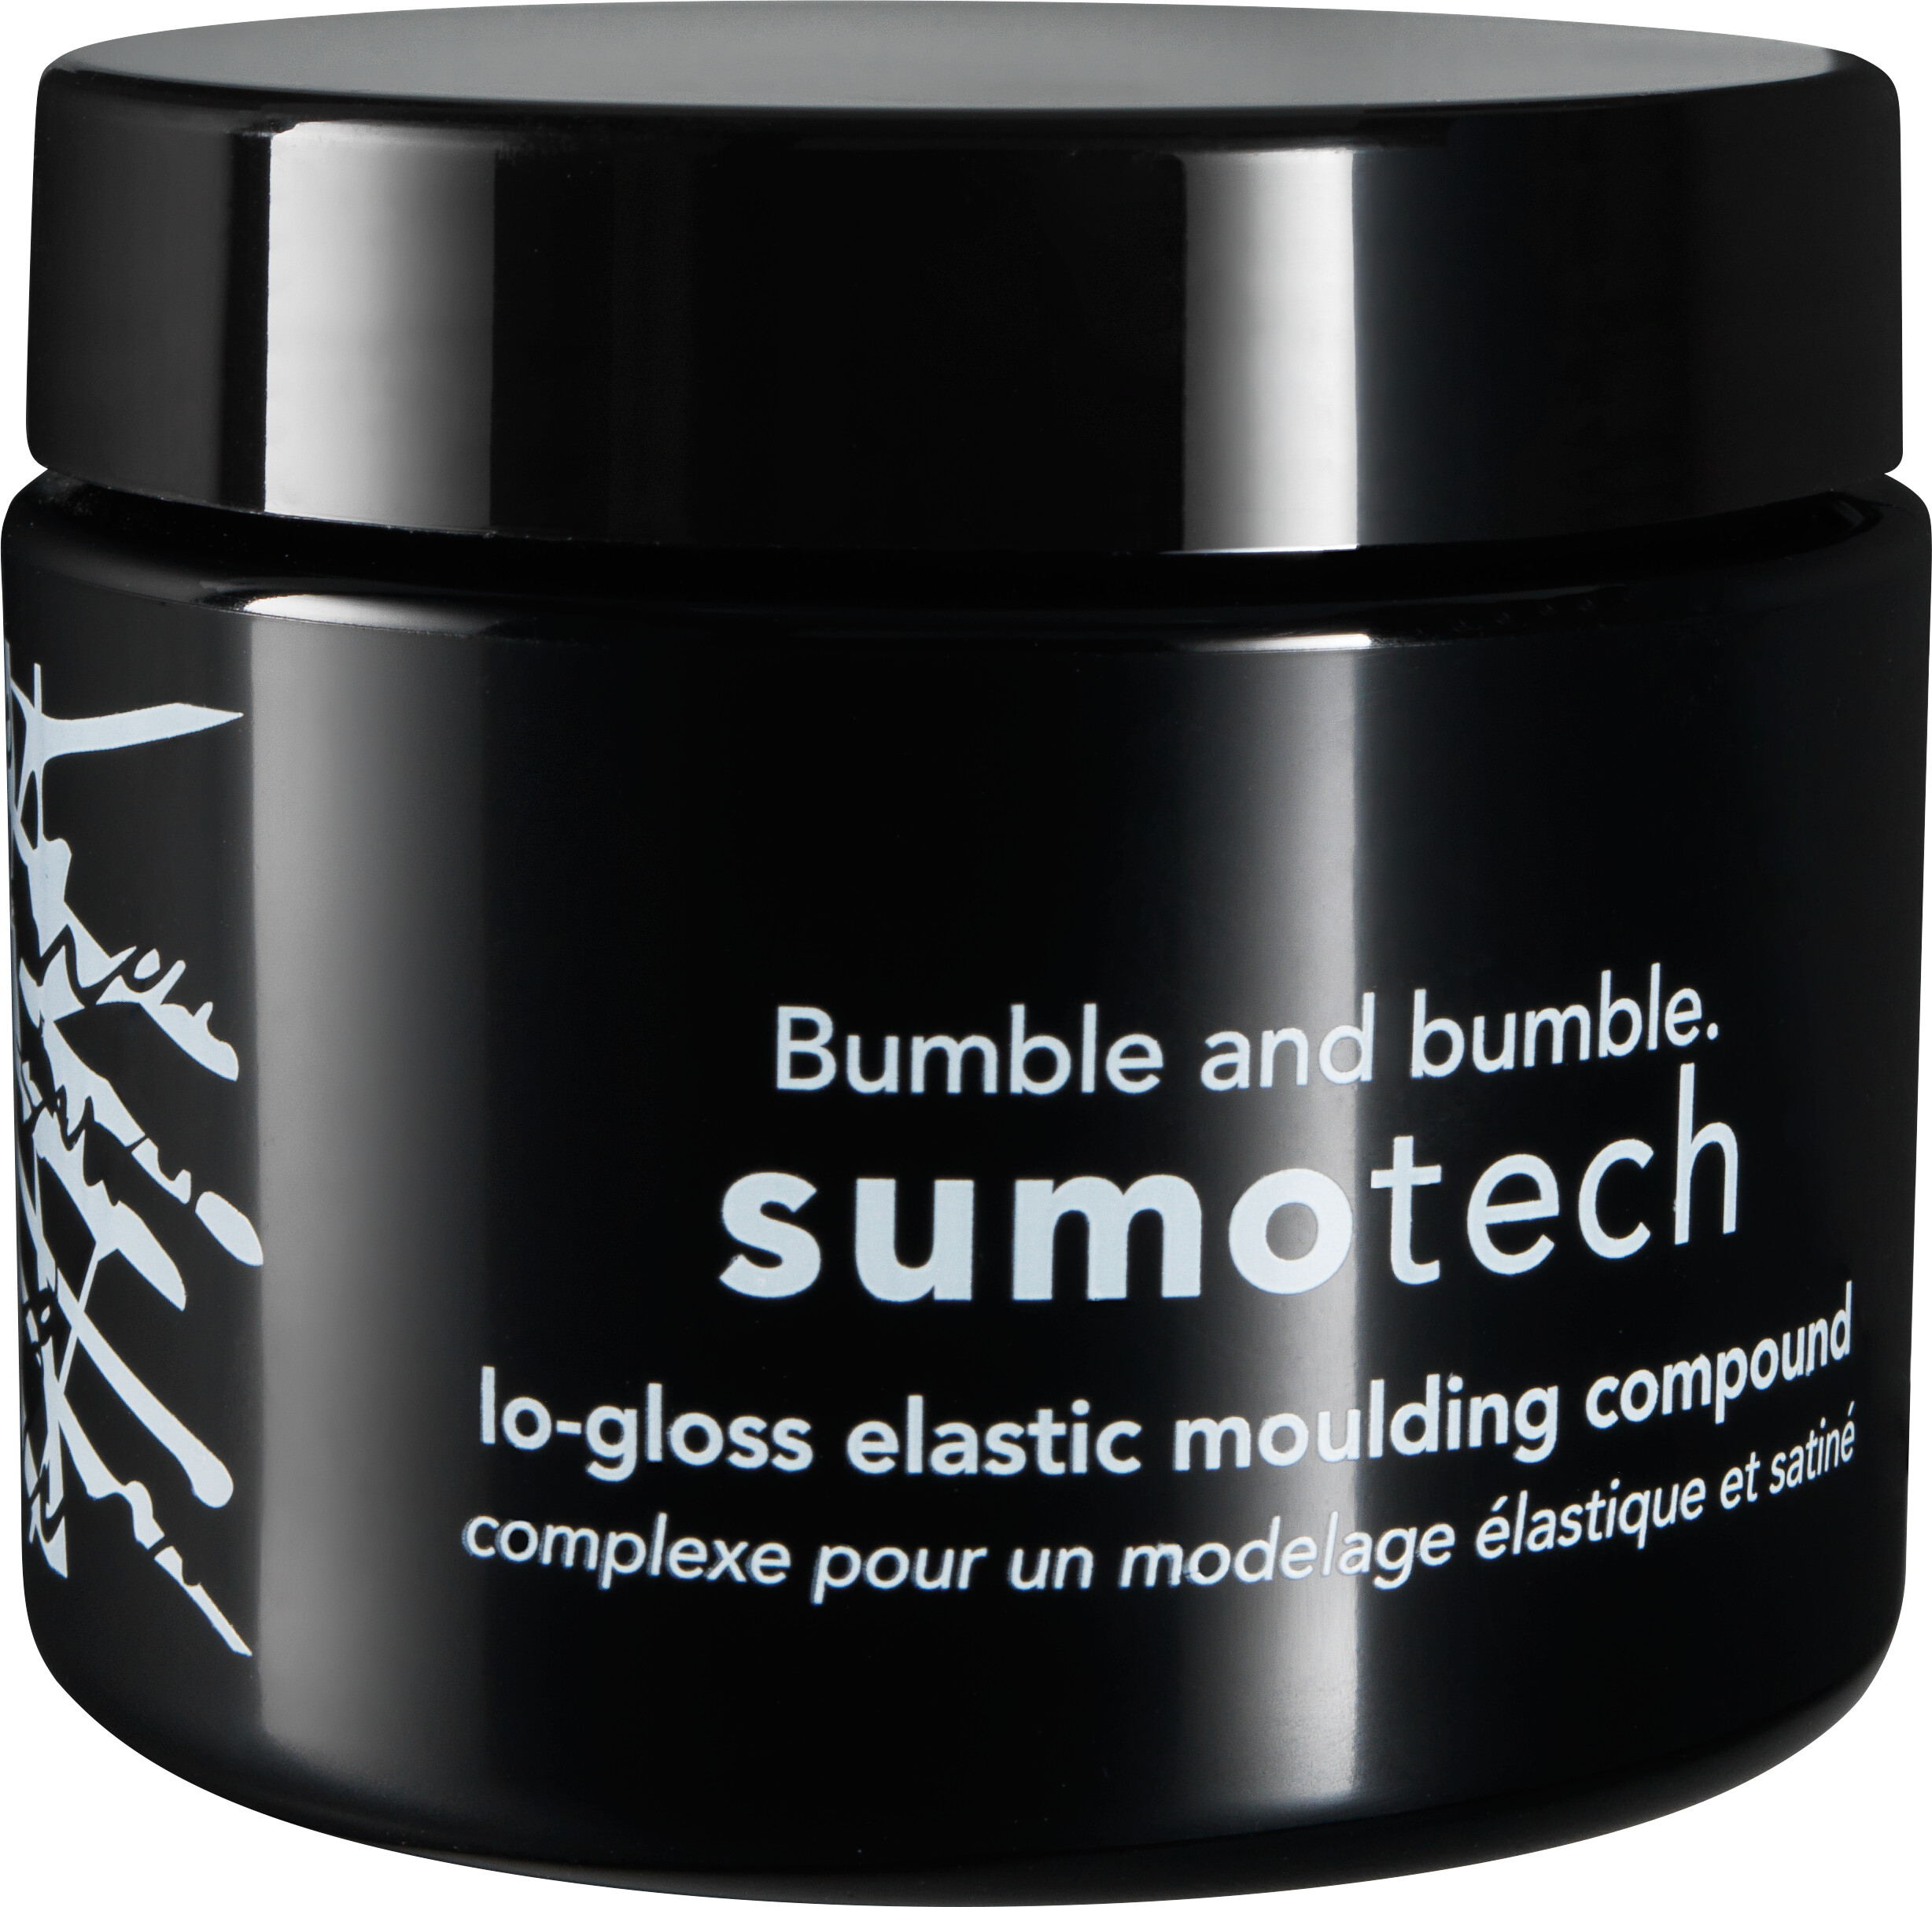 bumble and bumble haircut price bumble and bumble sumotech 3089 | bumble and bumble sumotech 50ml